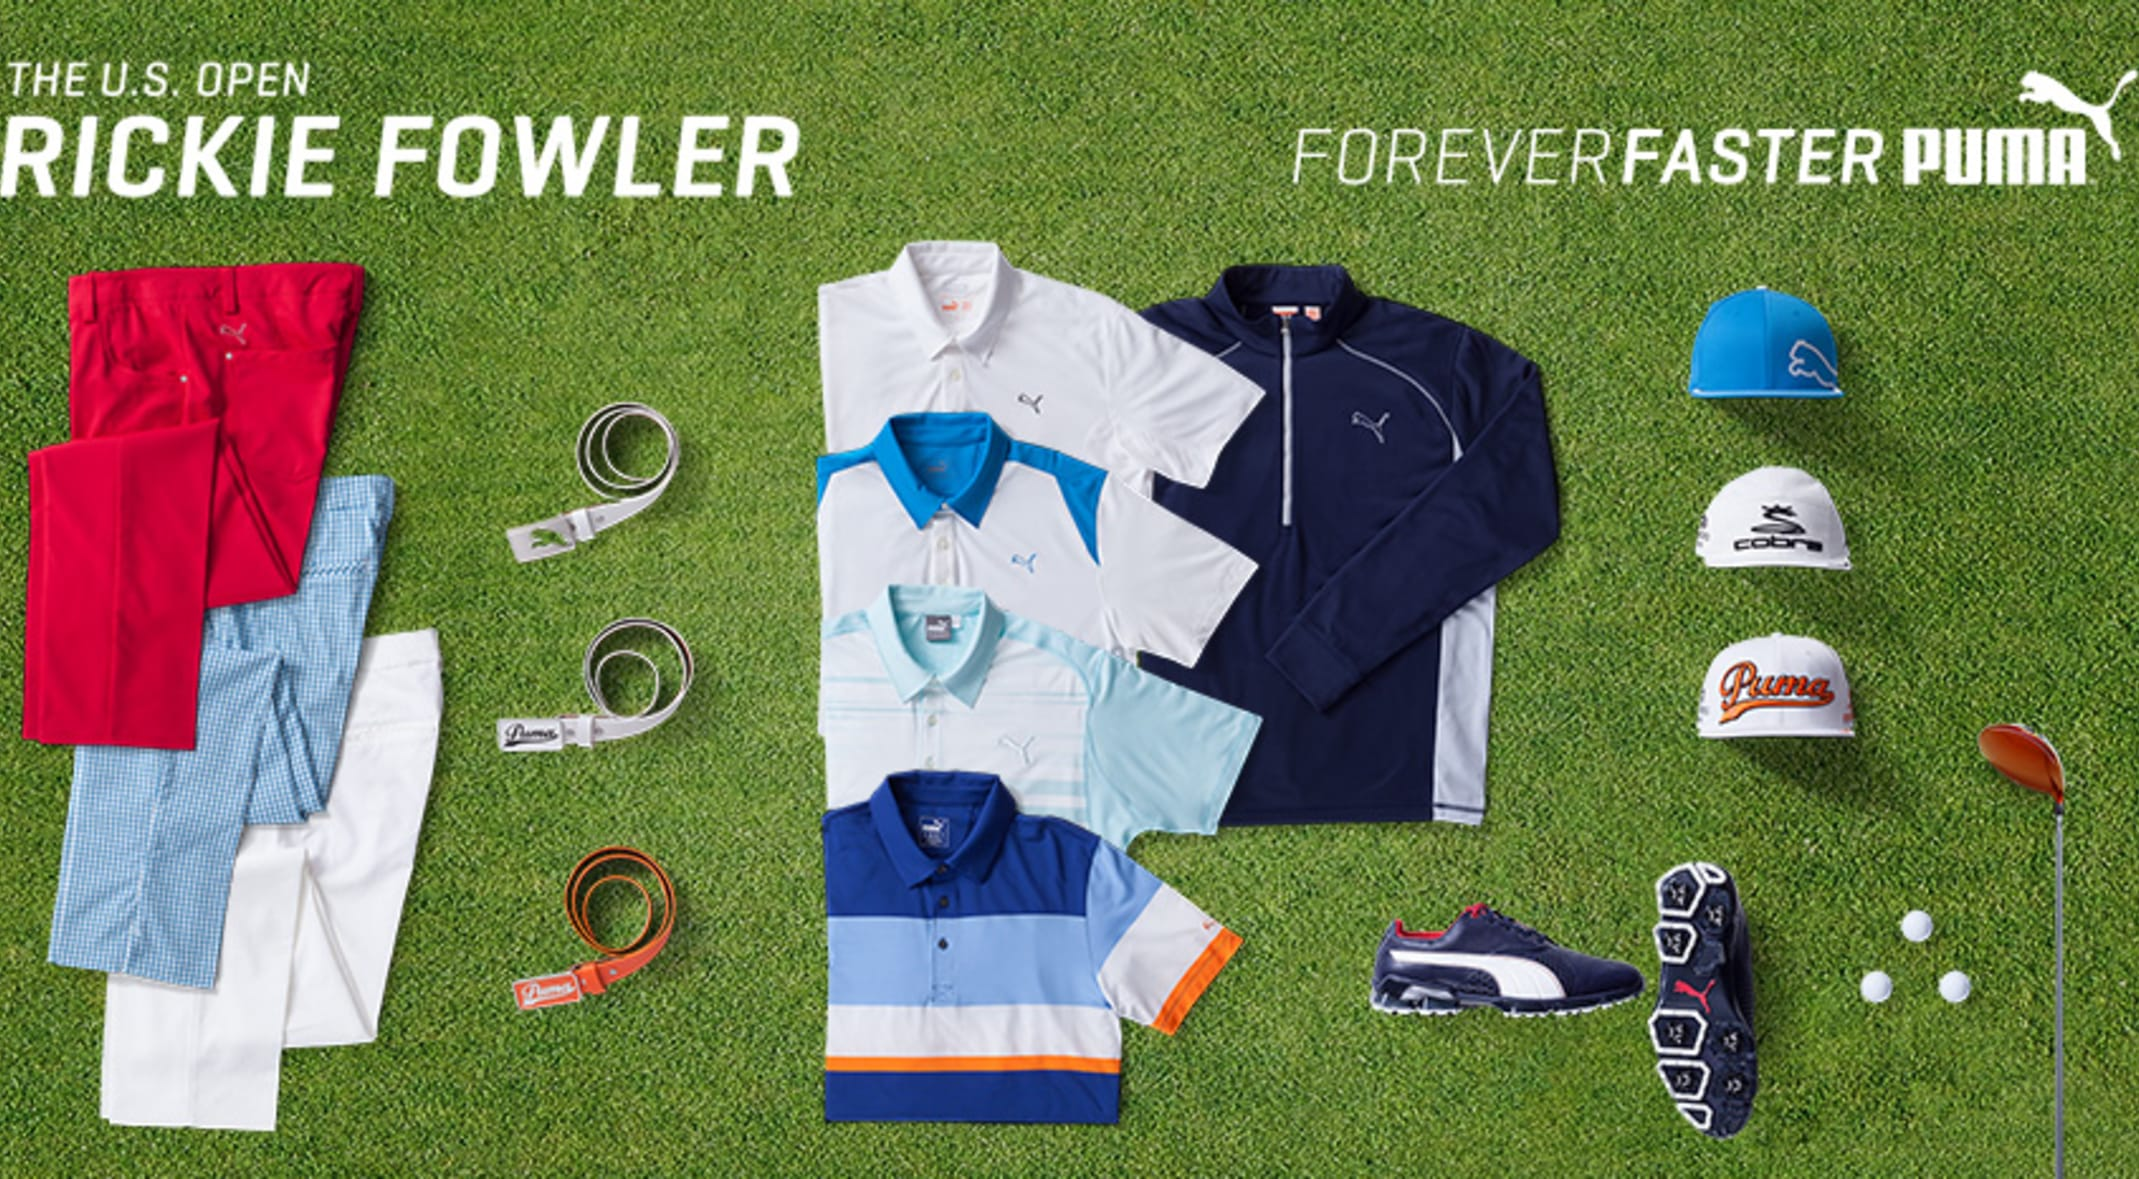 488d8f774499 Our Style Insider spoke with Rickie Fowler s COBRA PUMA Golf team to break  down what went